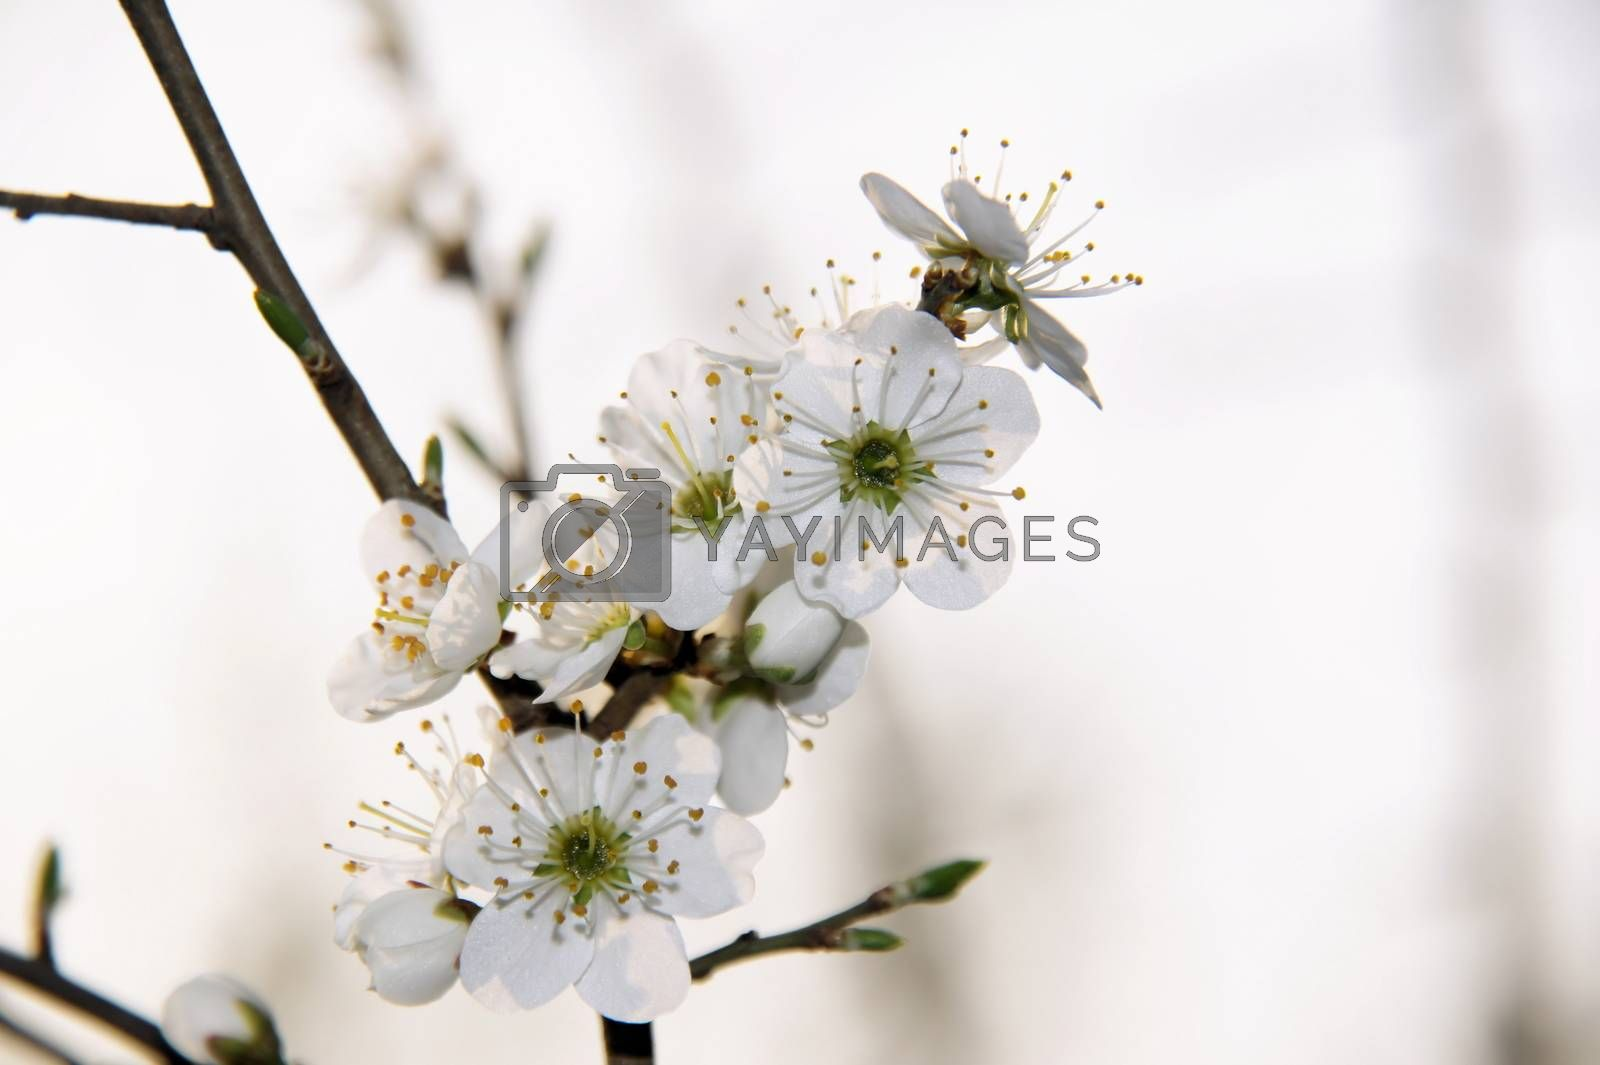 Royalty free image of Wild cherry blossoms by azurin